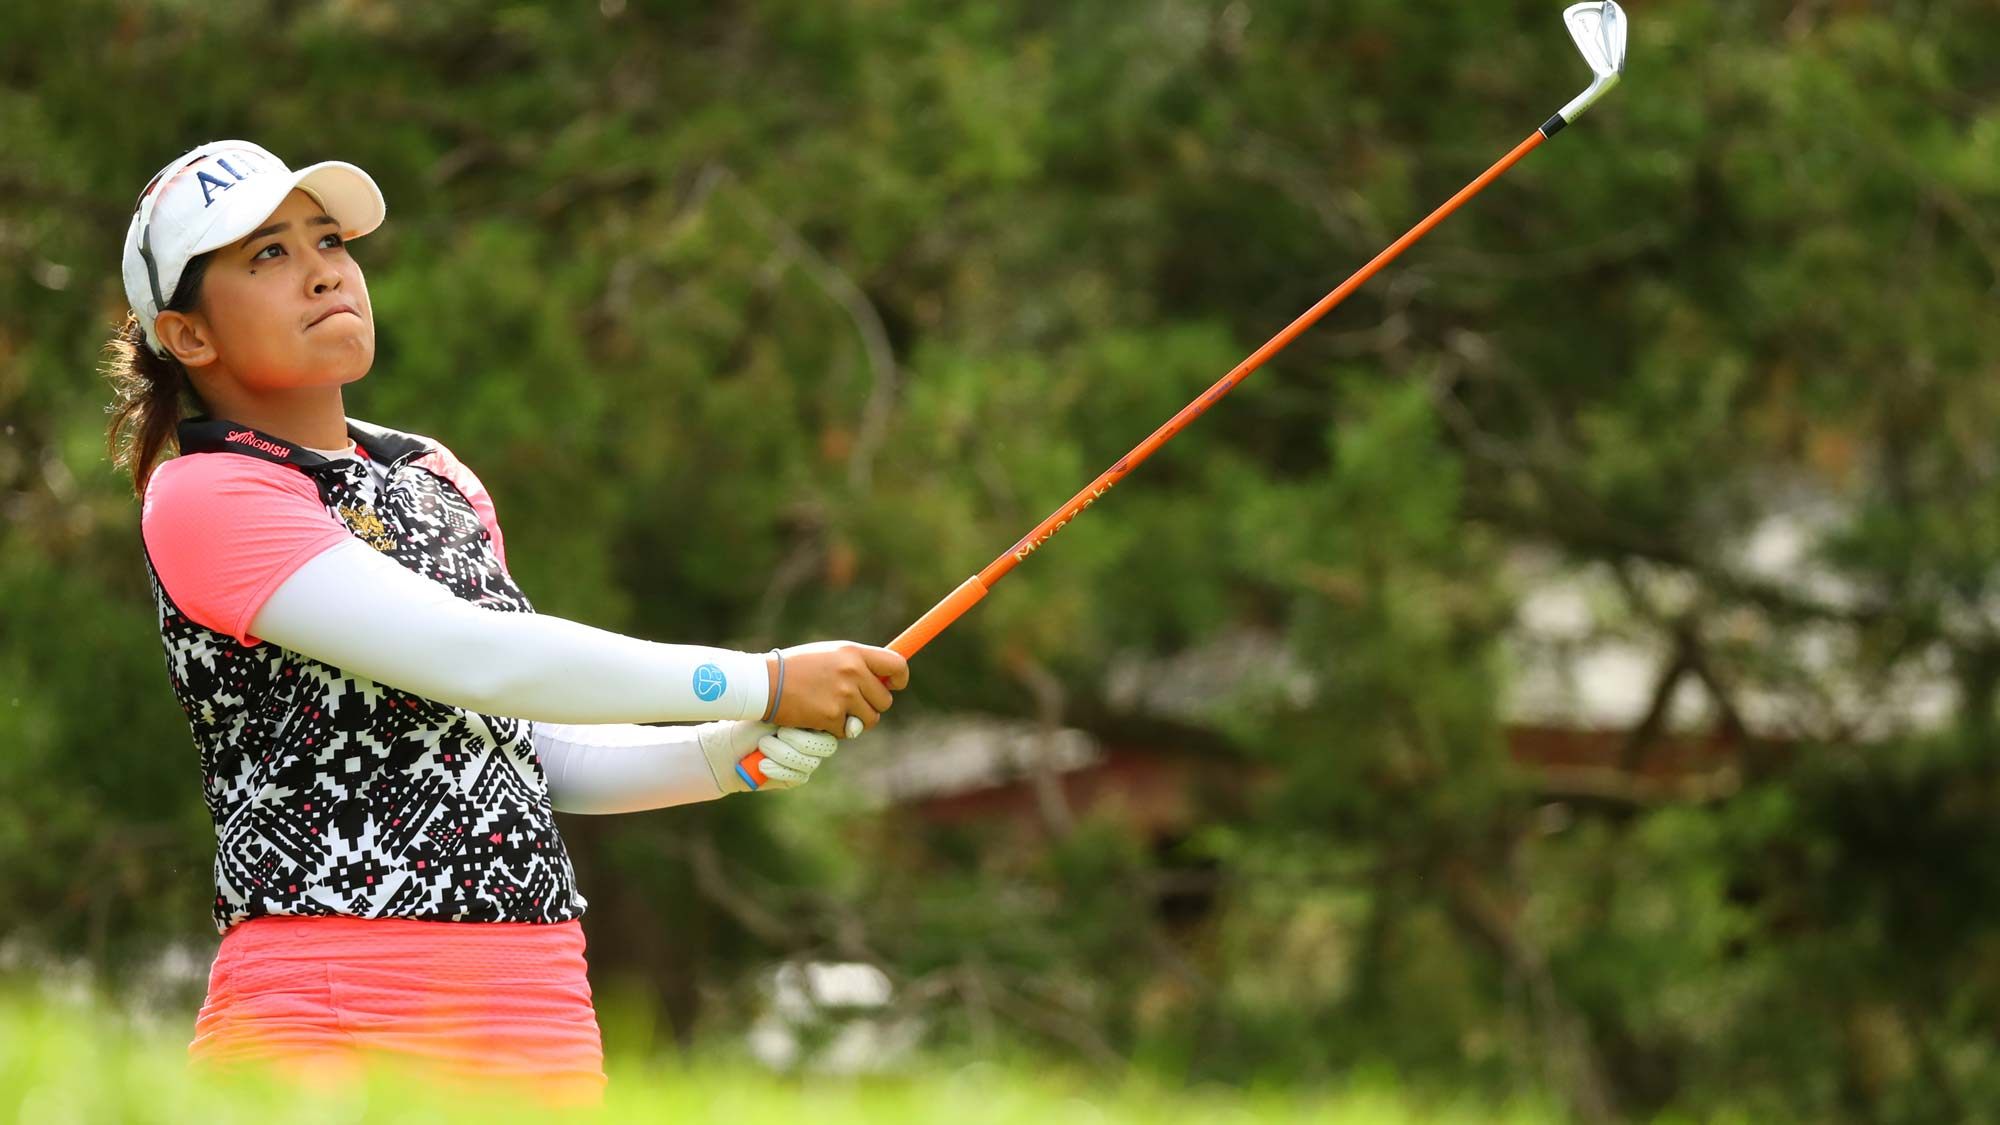 Jasmine Suwannapura of Thailand watches her tee shot on the seventh hole during the final round of the Dow Great Lakes Bay Invitational